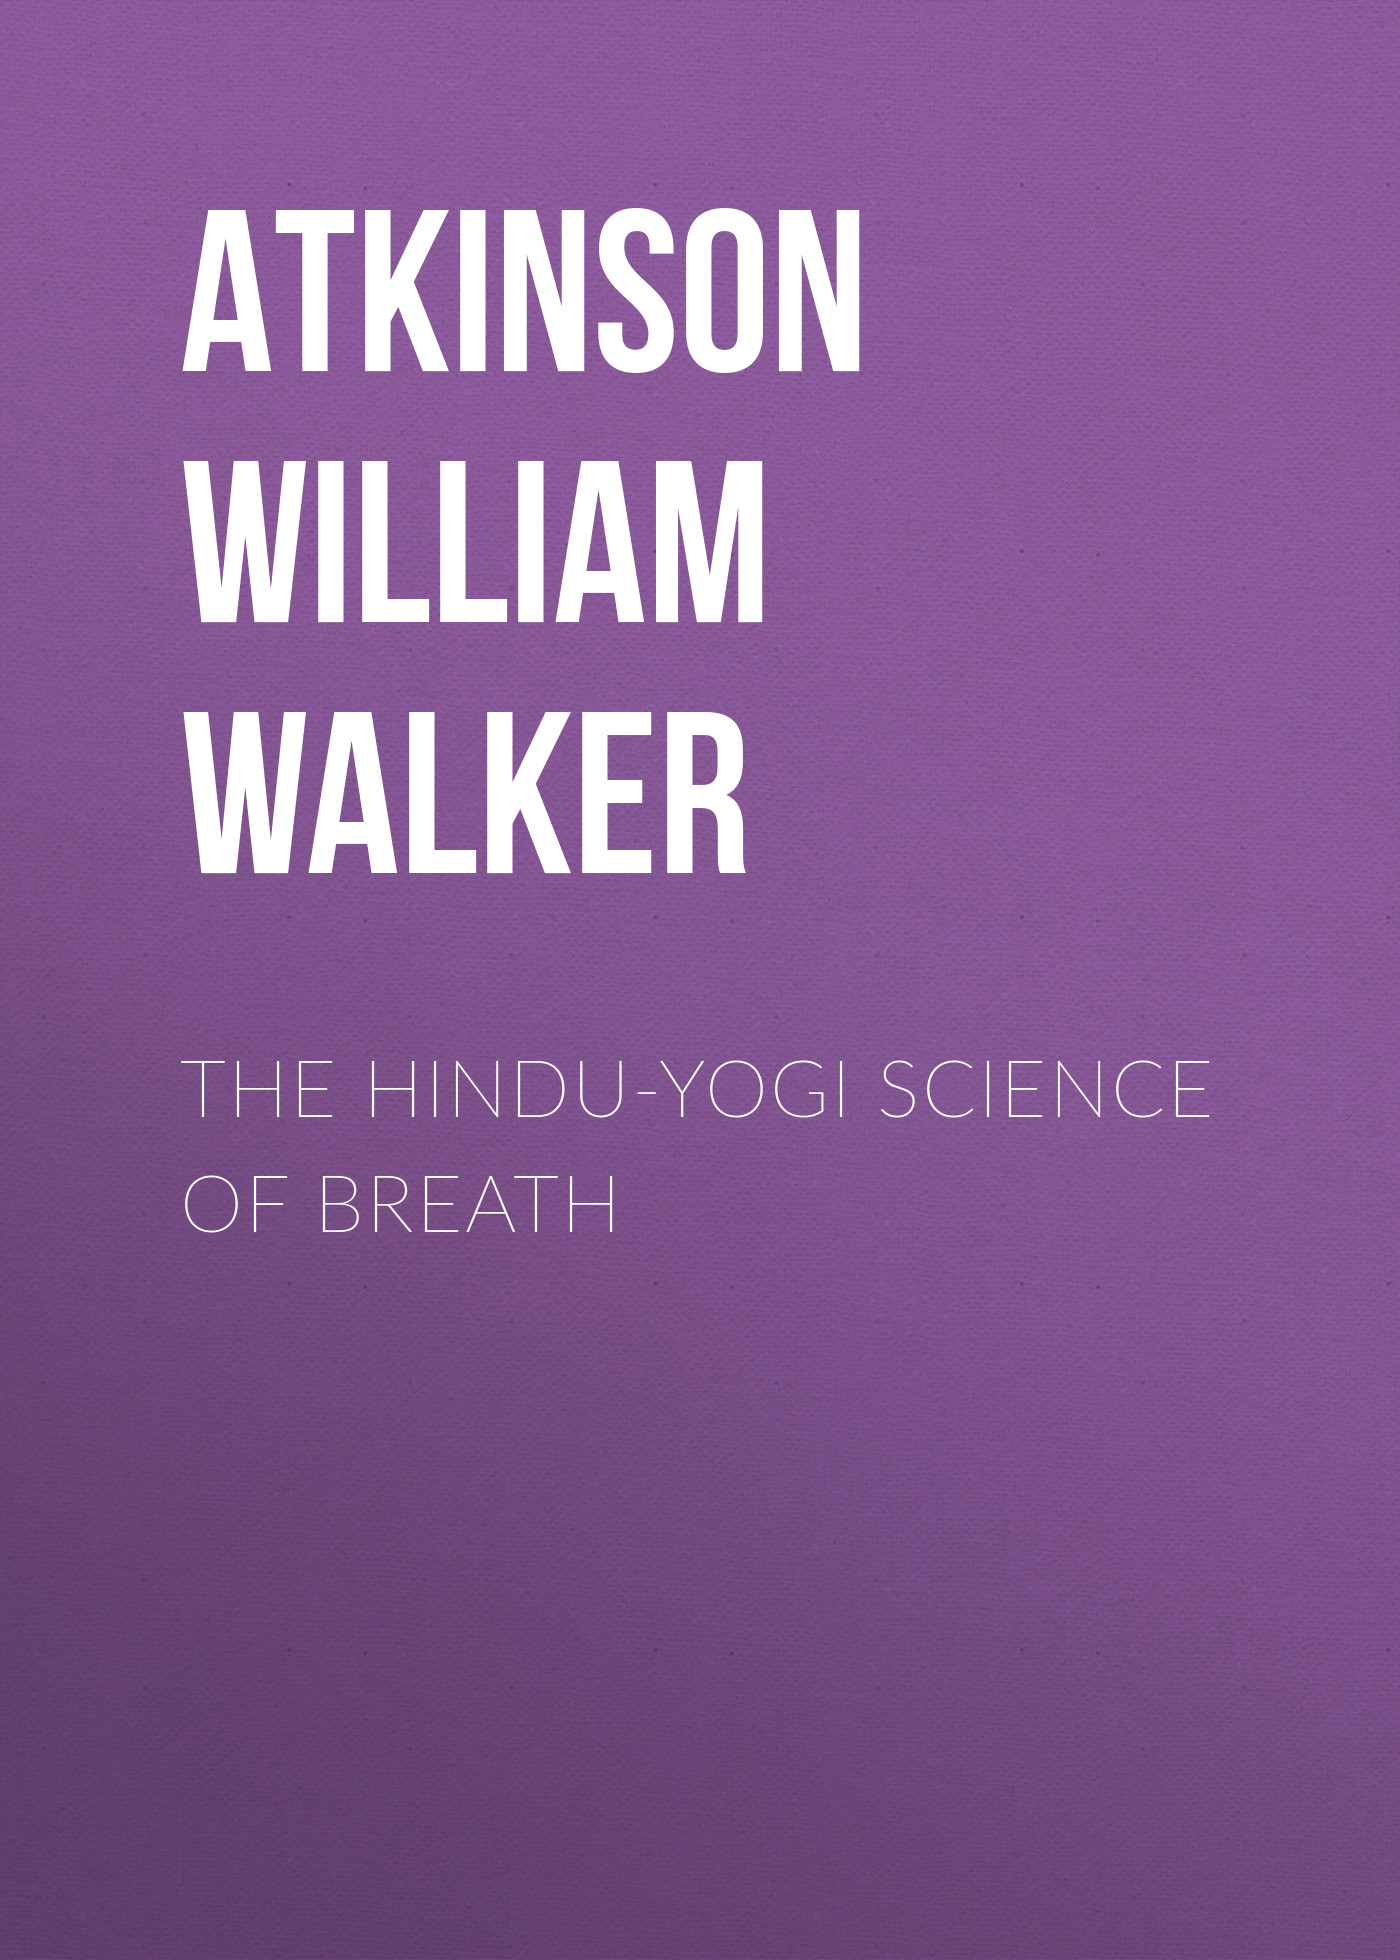 Atkinson William Walker The Hindu-Yogi Science Of Breath купить недорого в Москве